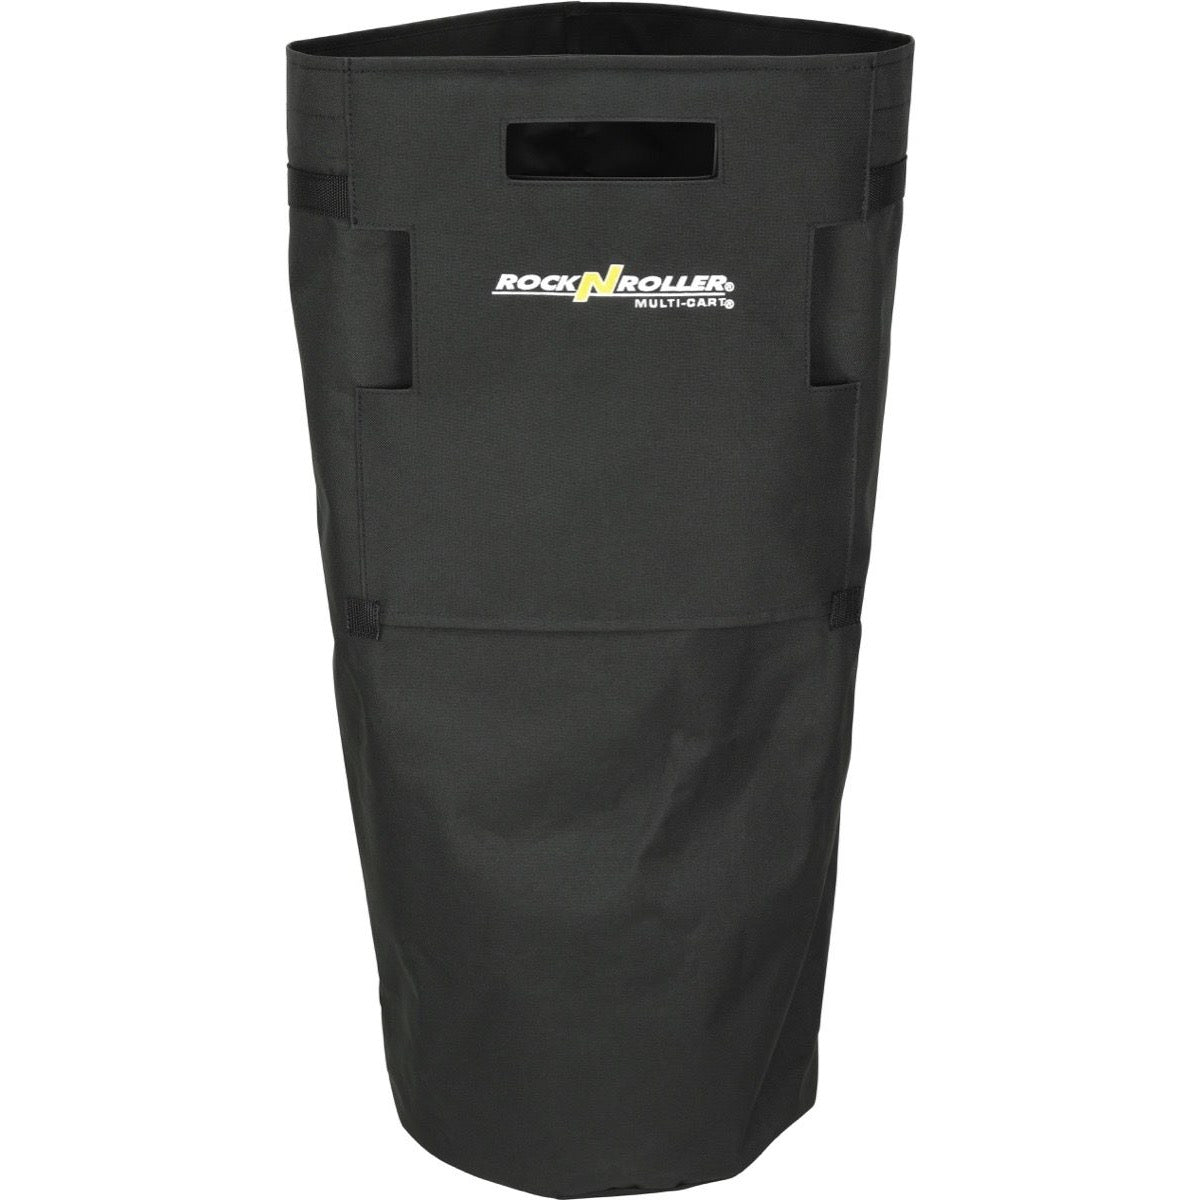 RocknRoller Handle Bag with Rigid Bottom, RSA-HBR2, Fits R2 Carts